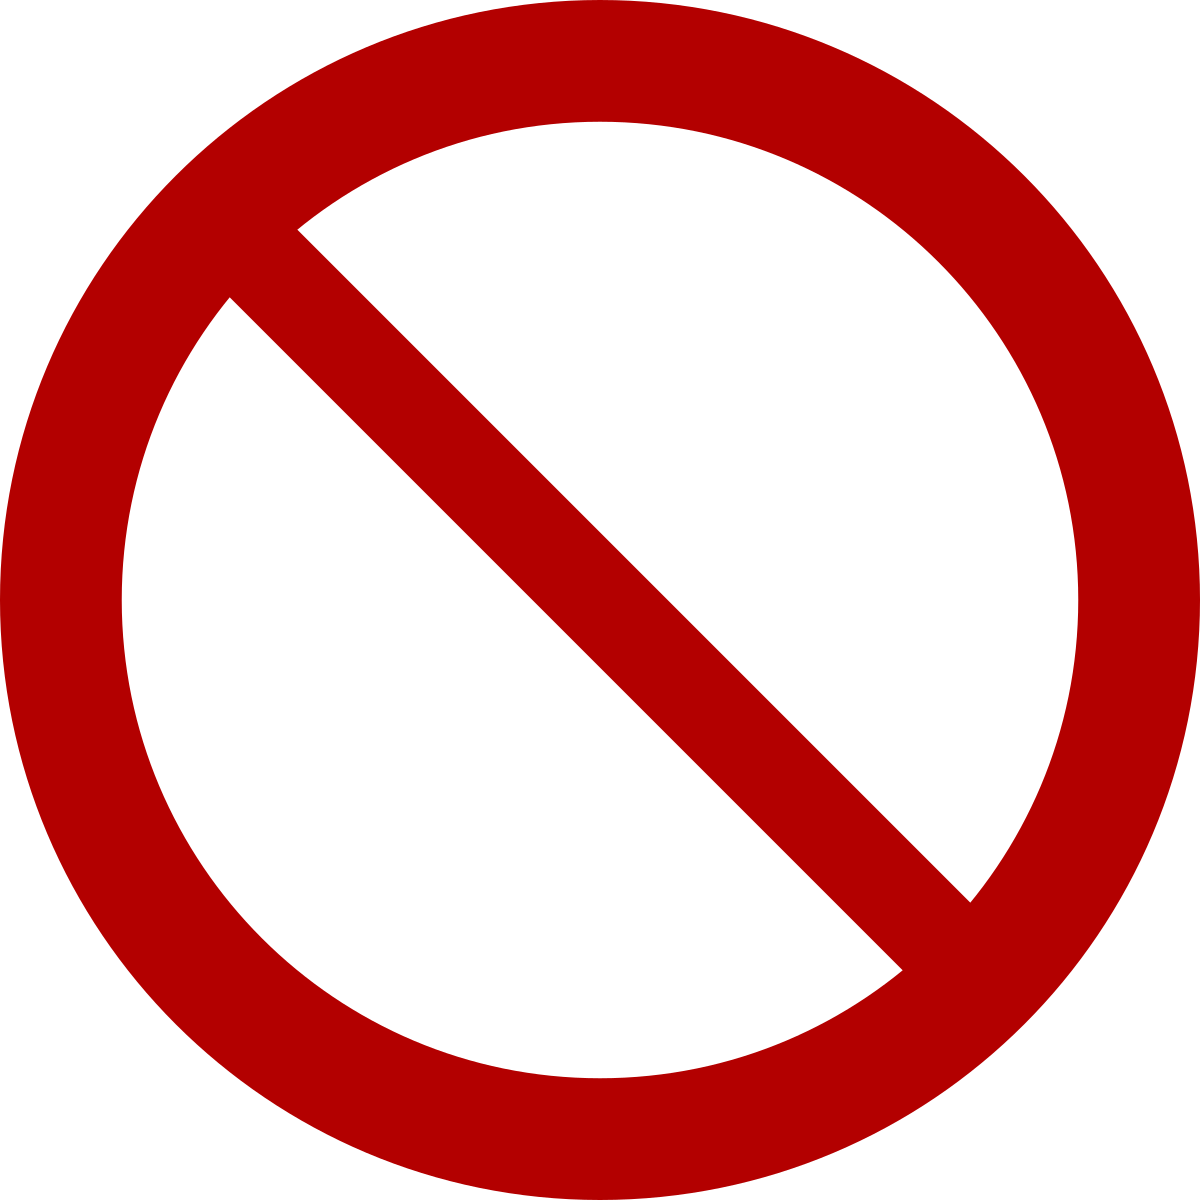 Stop sign clip art white. No symbol wikipedia